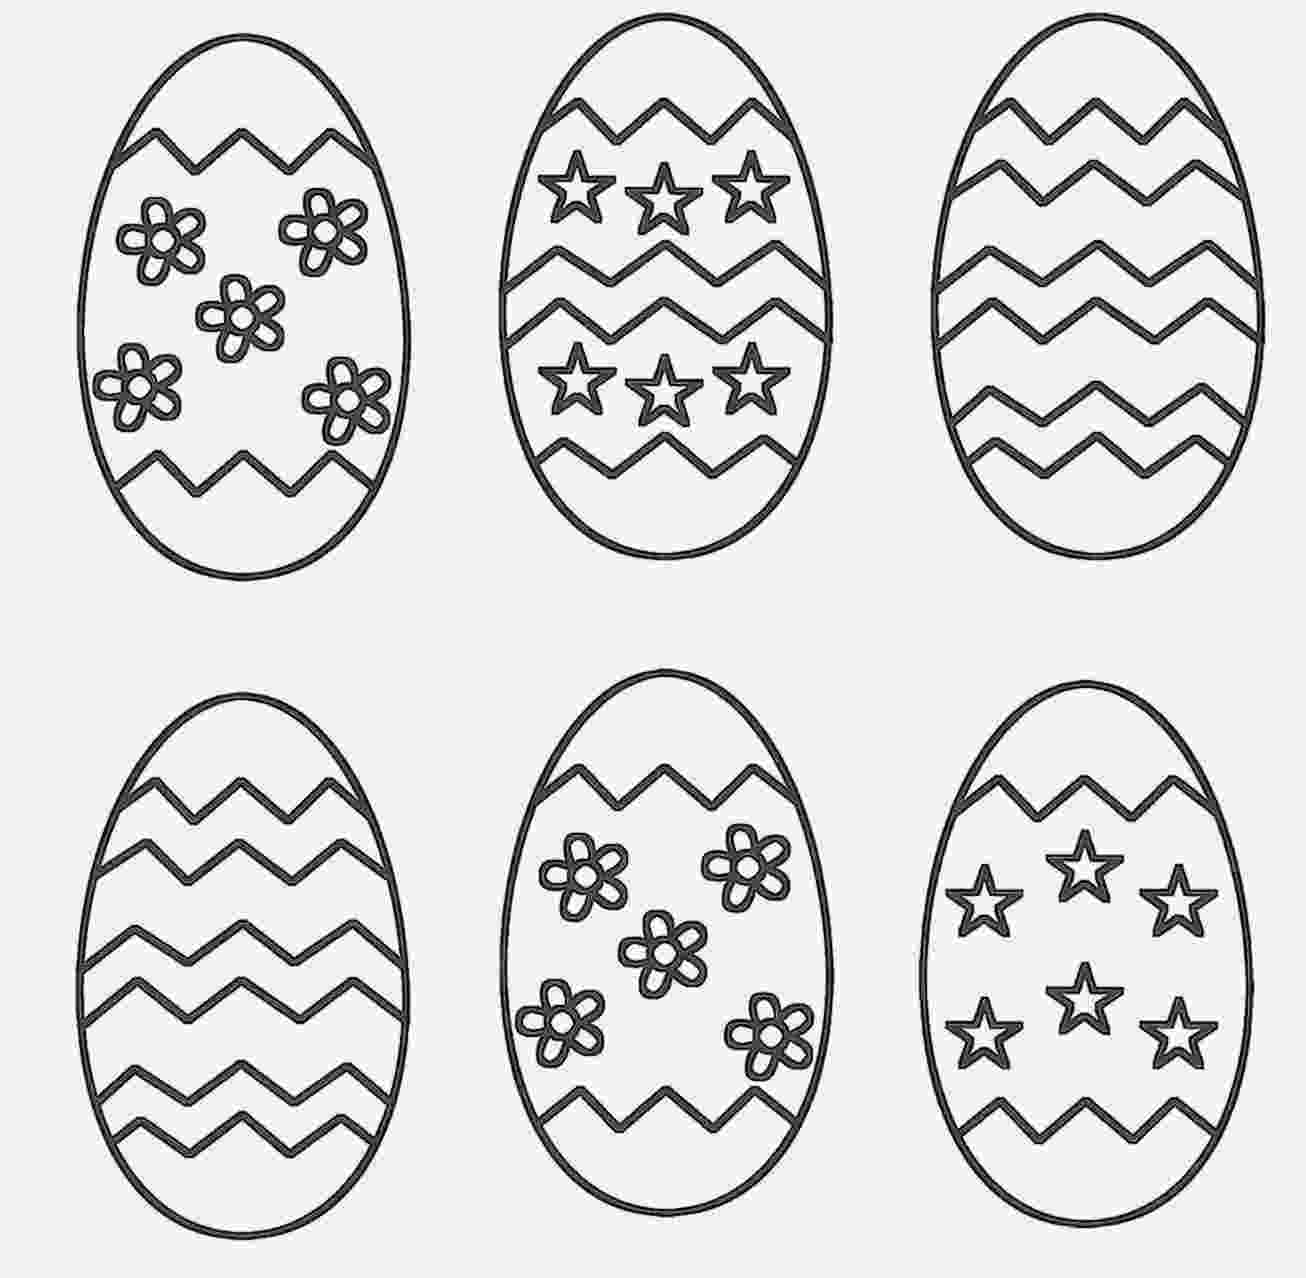 printable colouring pages of easter eggs easter egg coloring sheets free coloring sheet printable easter eggs of colouring pages